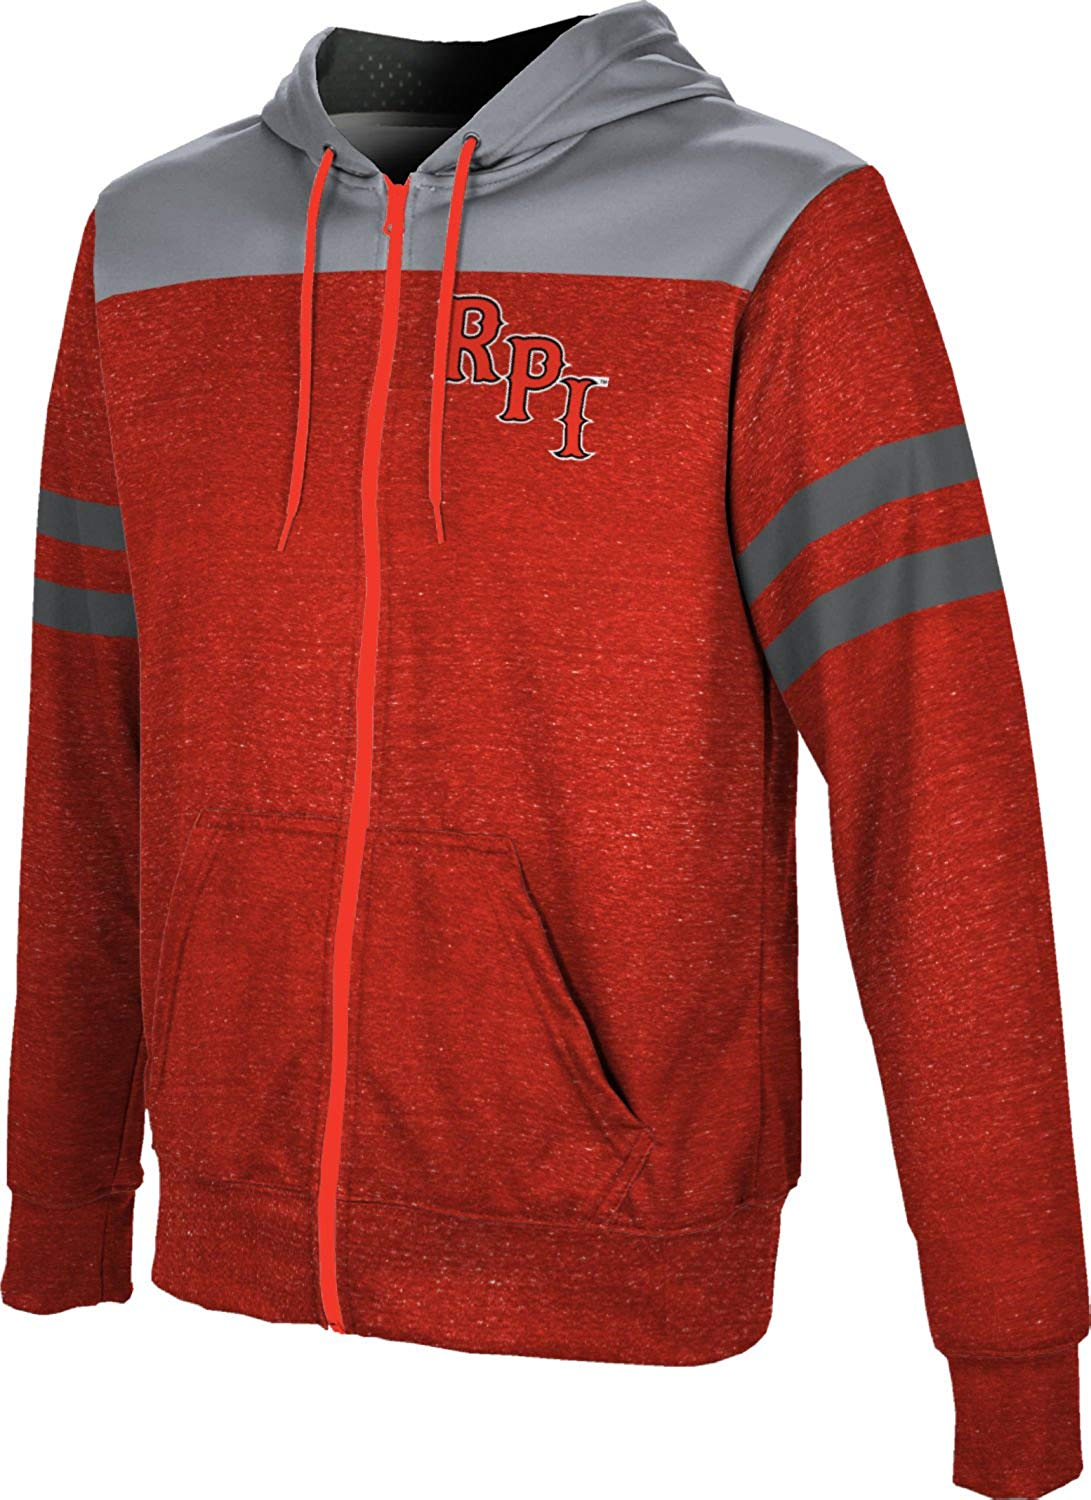 ProSphere Rensselaer Polytechnic Institute University Boys' Full Zip Hoodie - Gameday